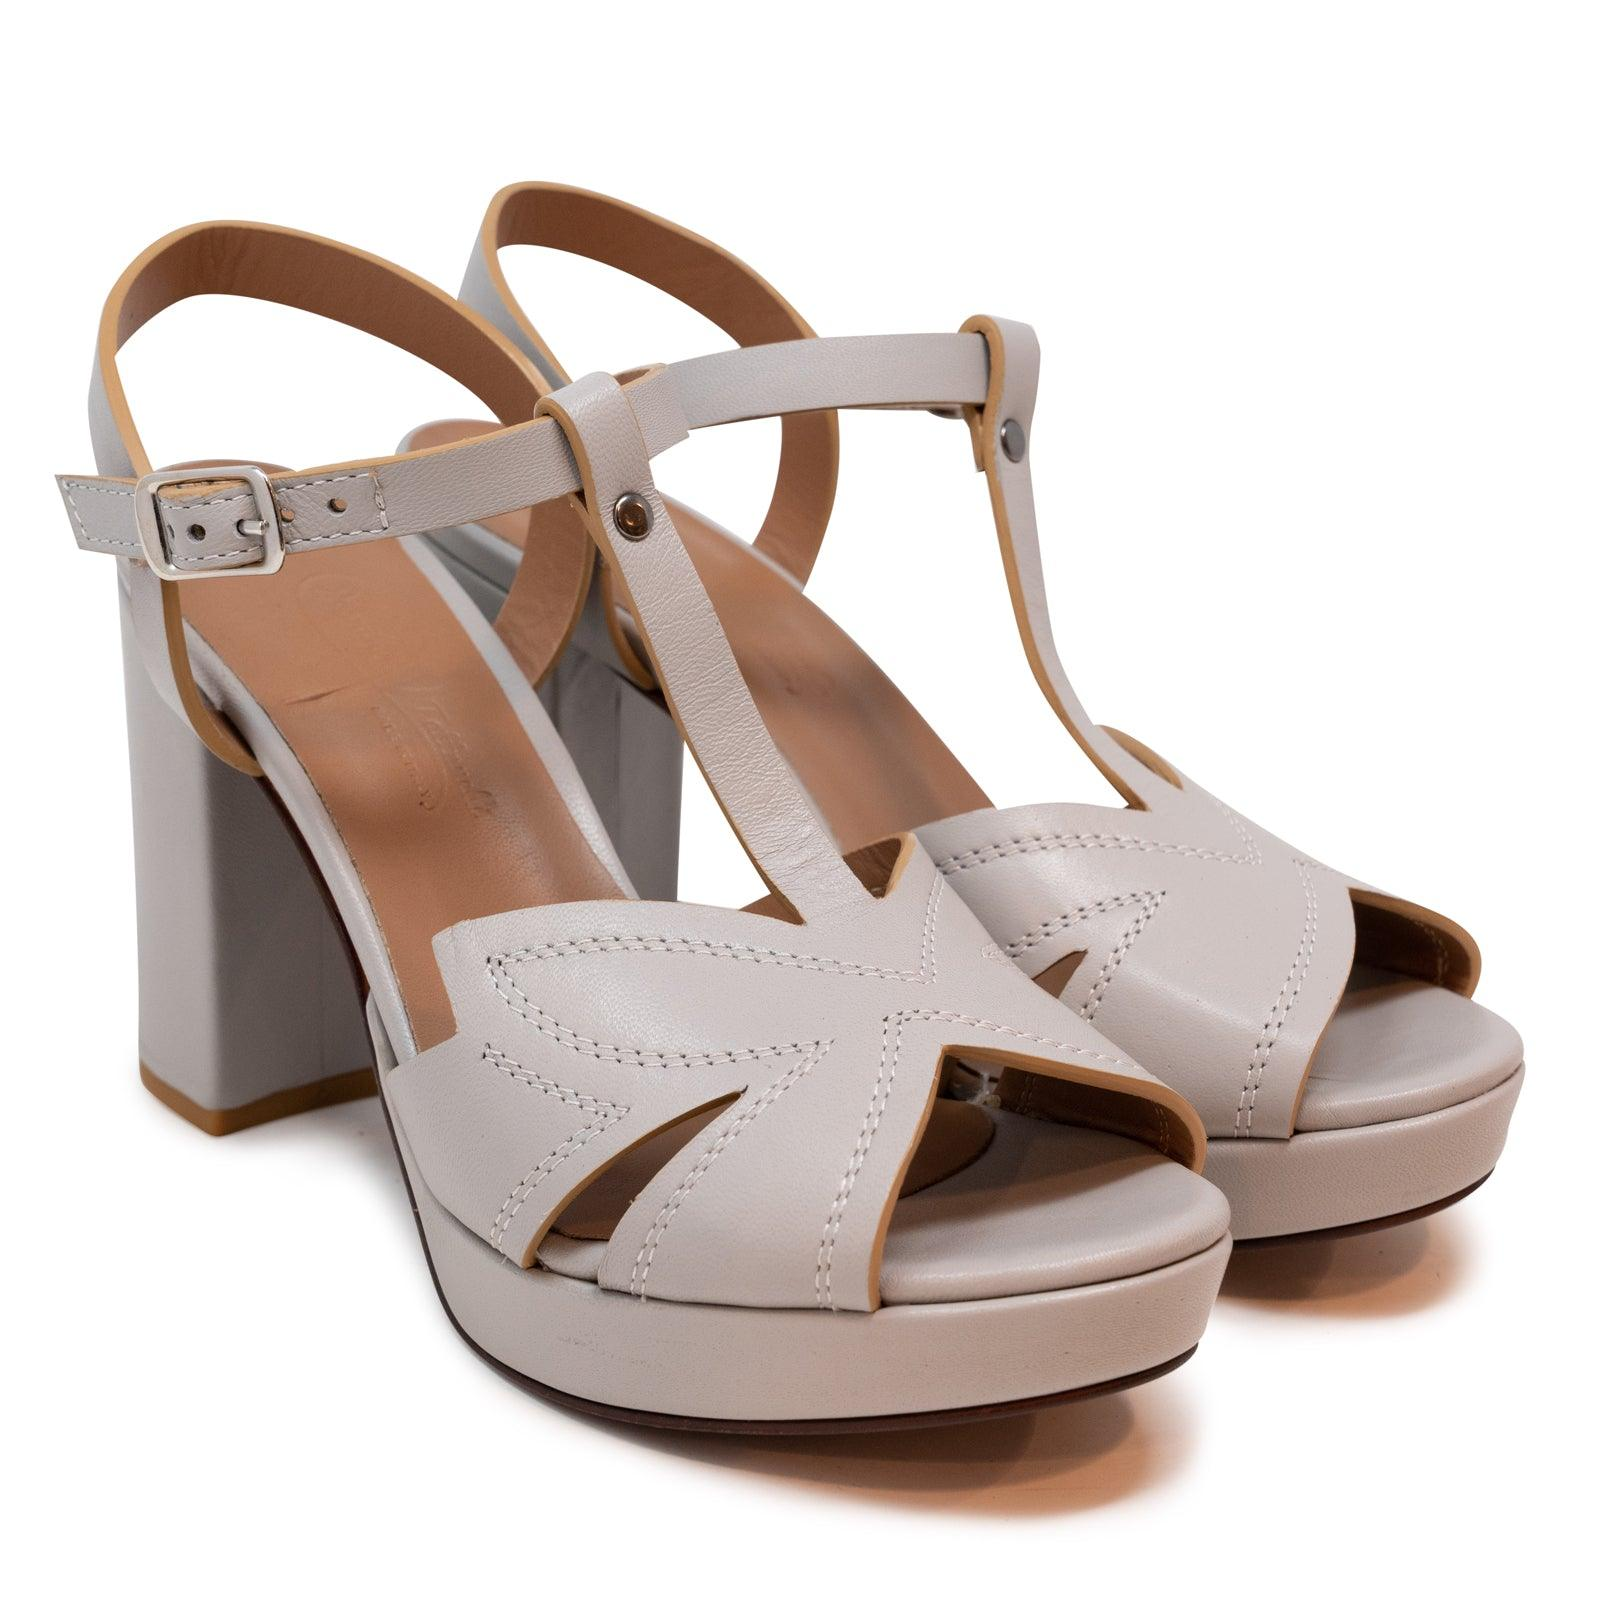 Women's Buffered Leather Platform Sandals in Magnesio